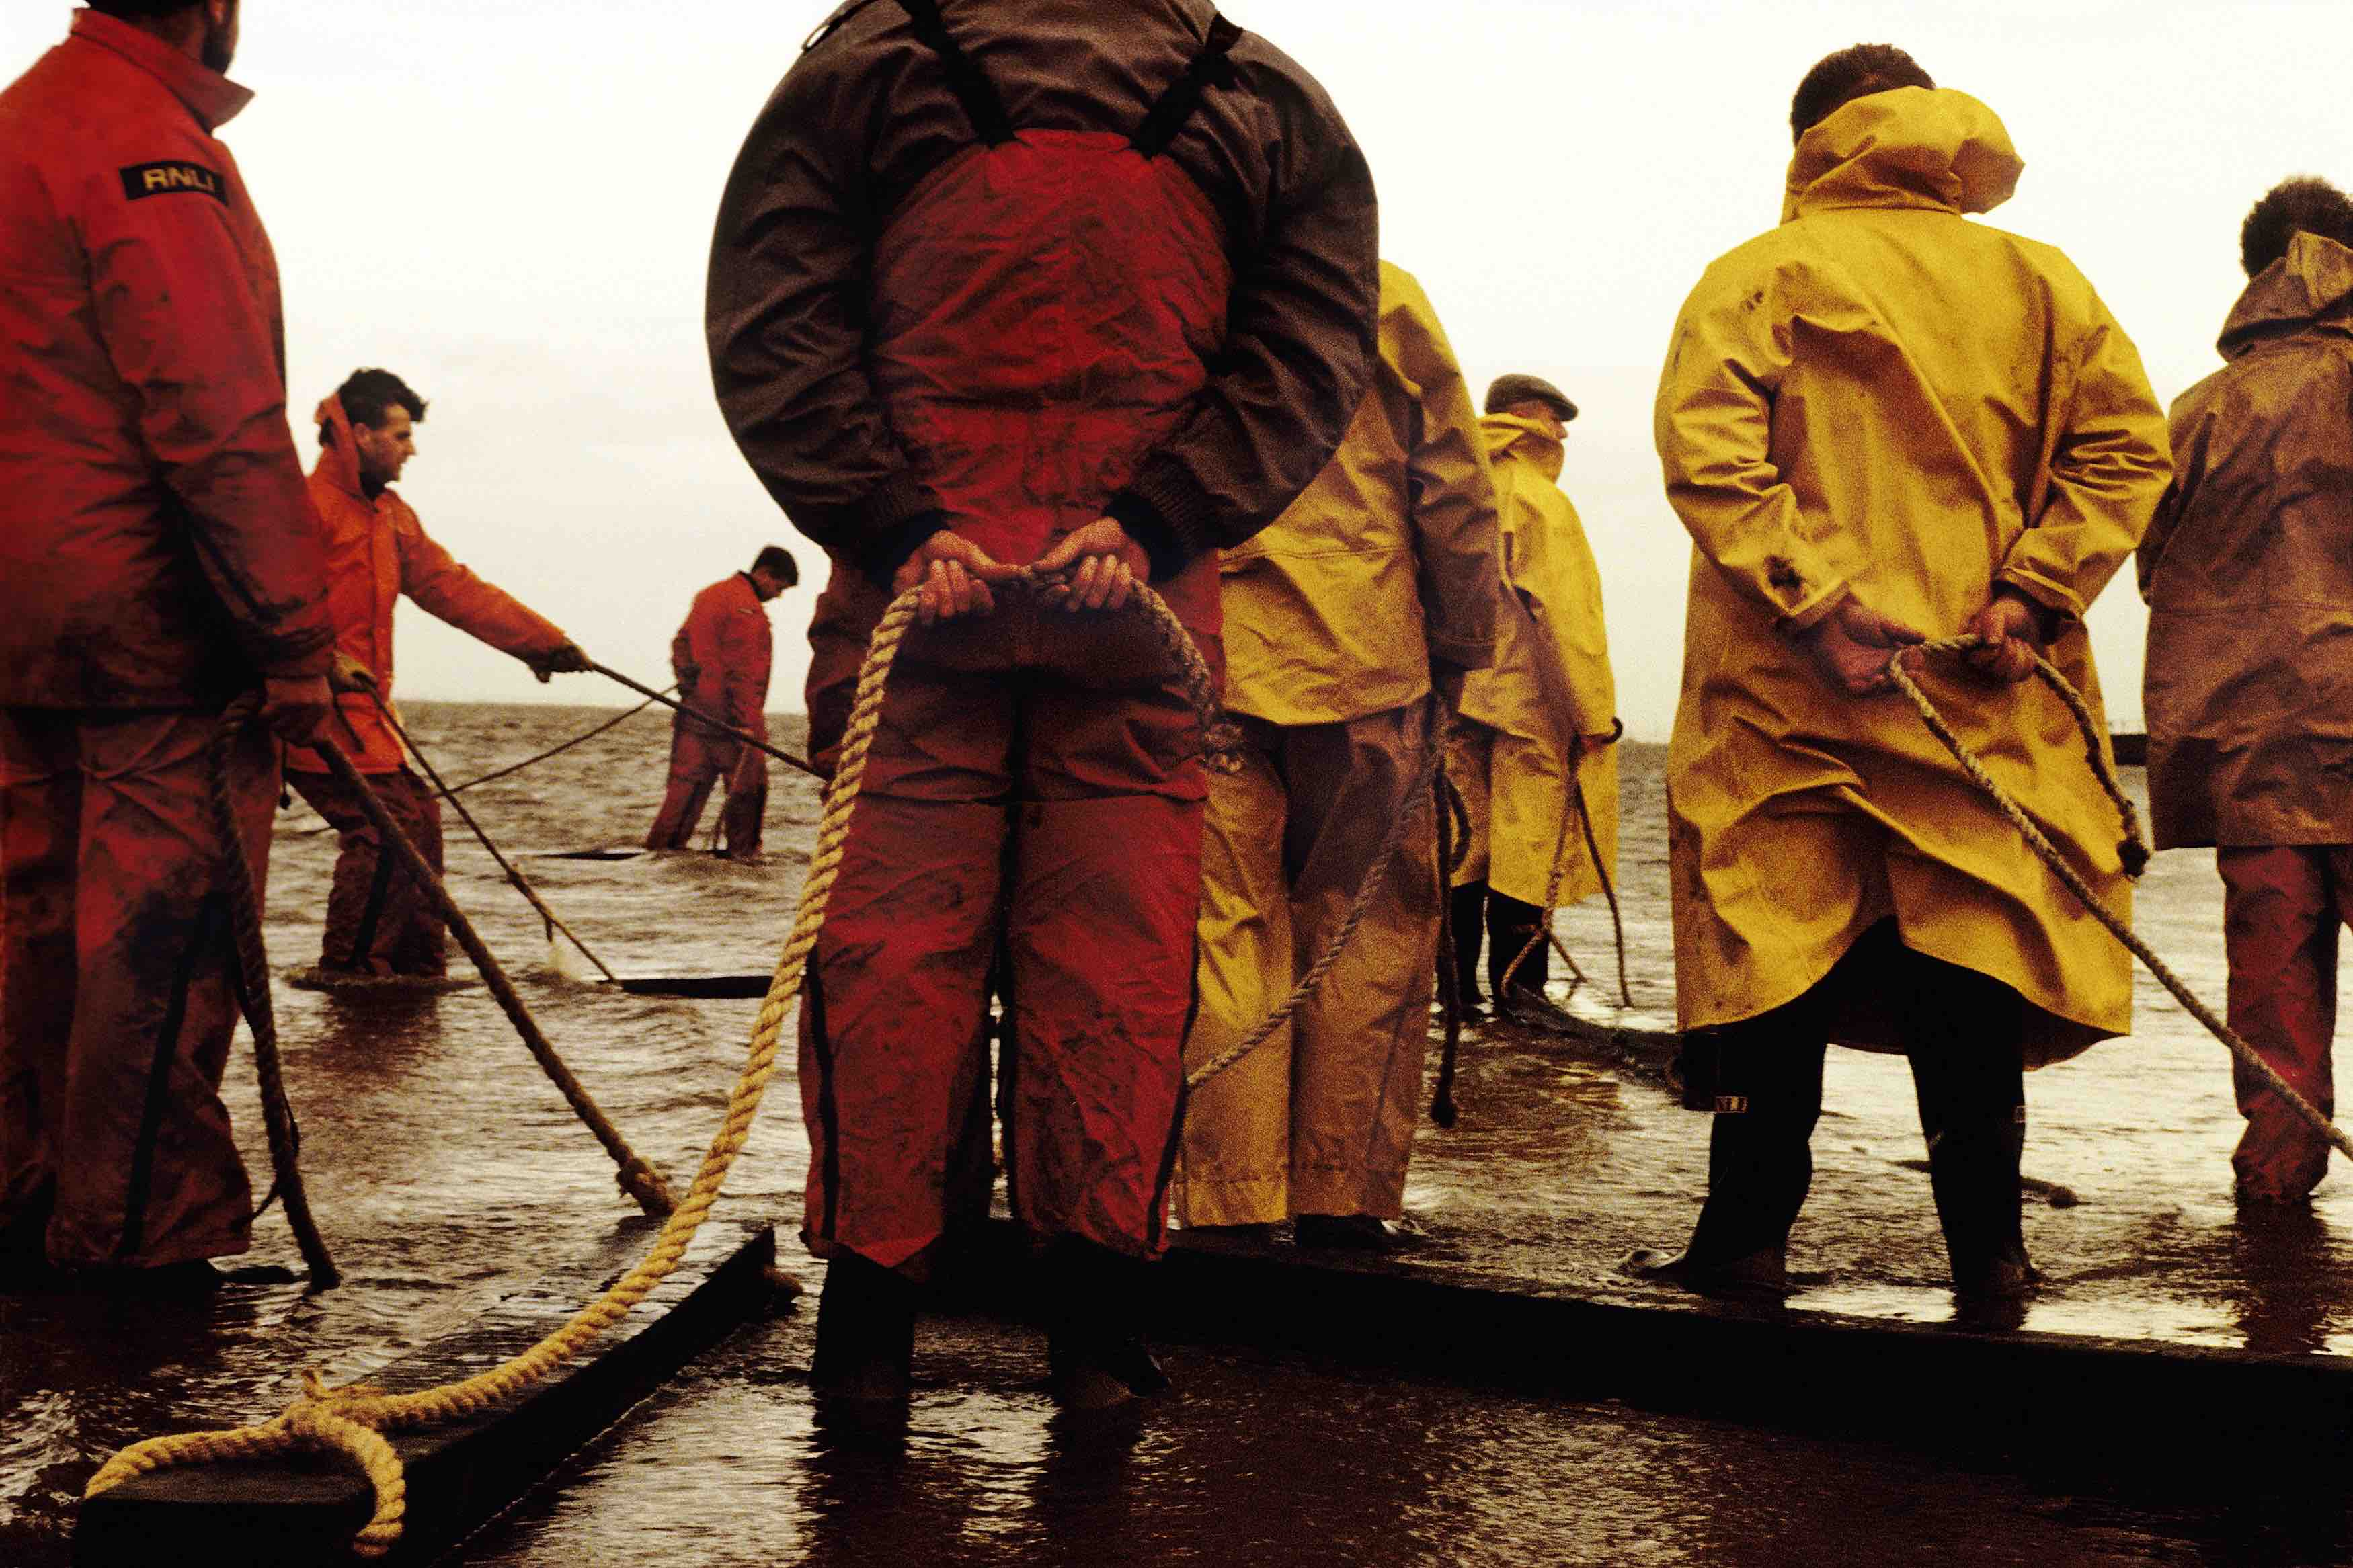 Hoylake lifeboat crew in 1991. Backs of the crew on the shore with ropes.